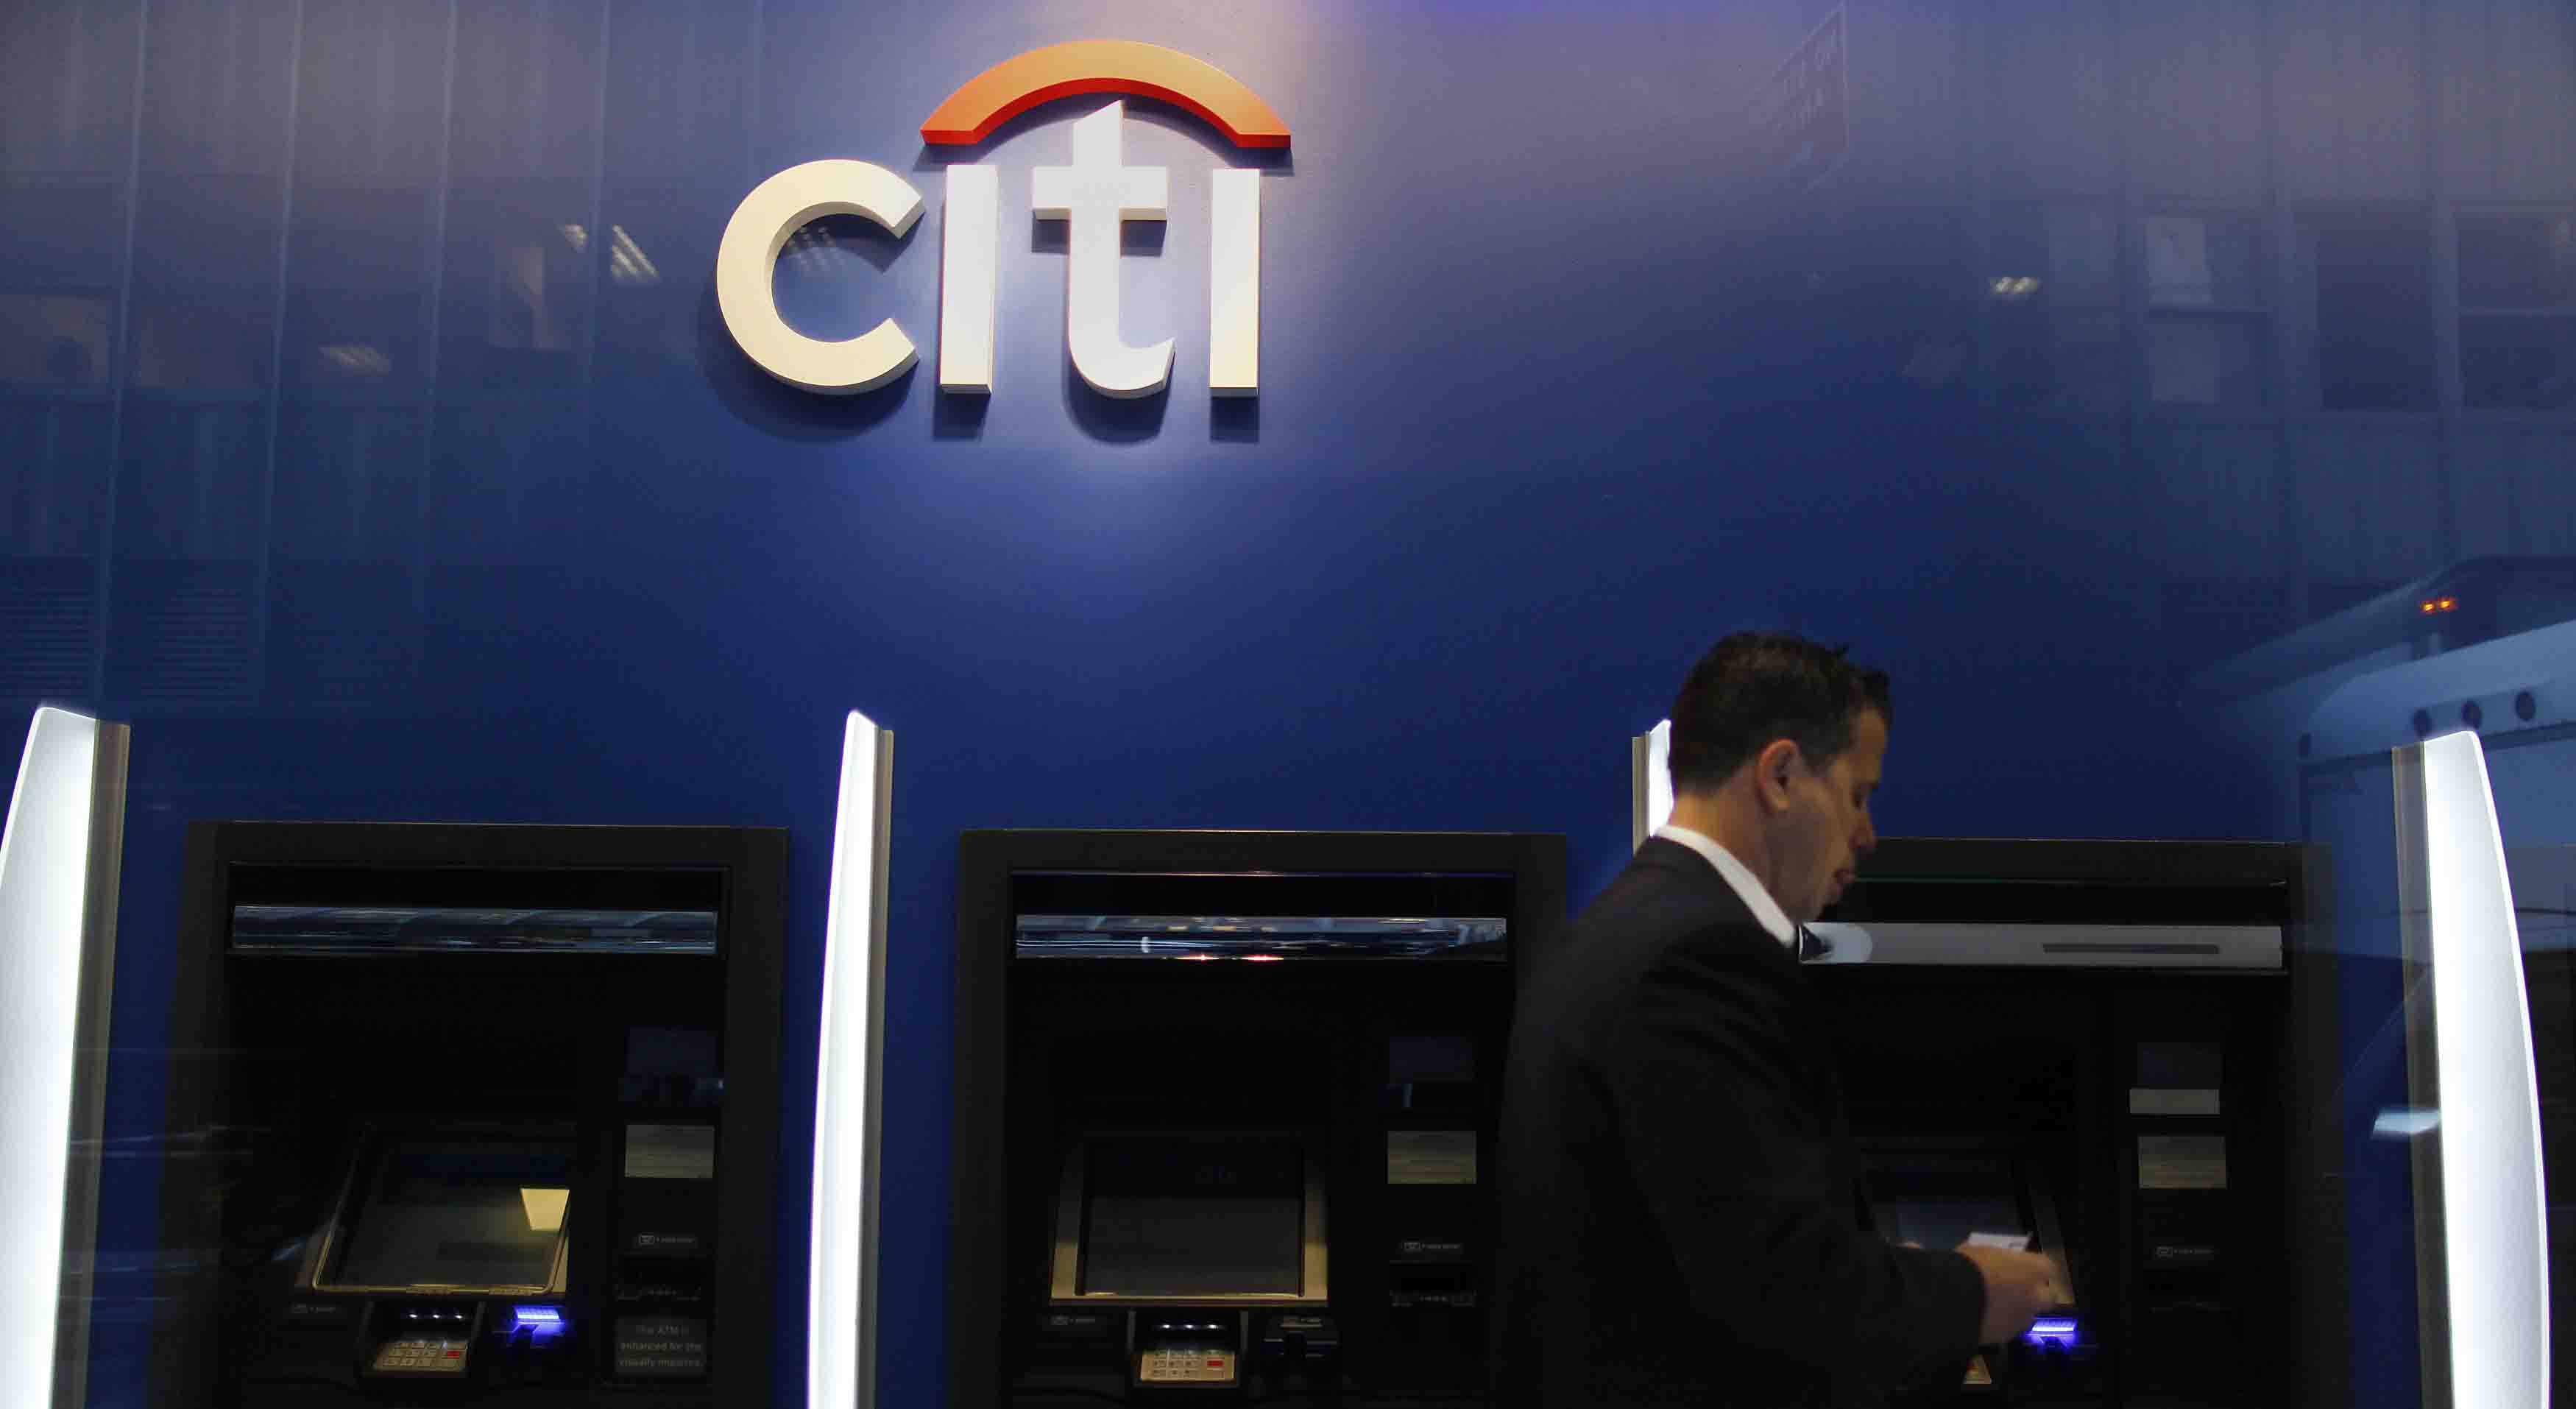 Citigroup destinará 2,700 mdd a costos legales